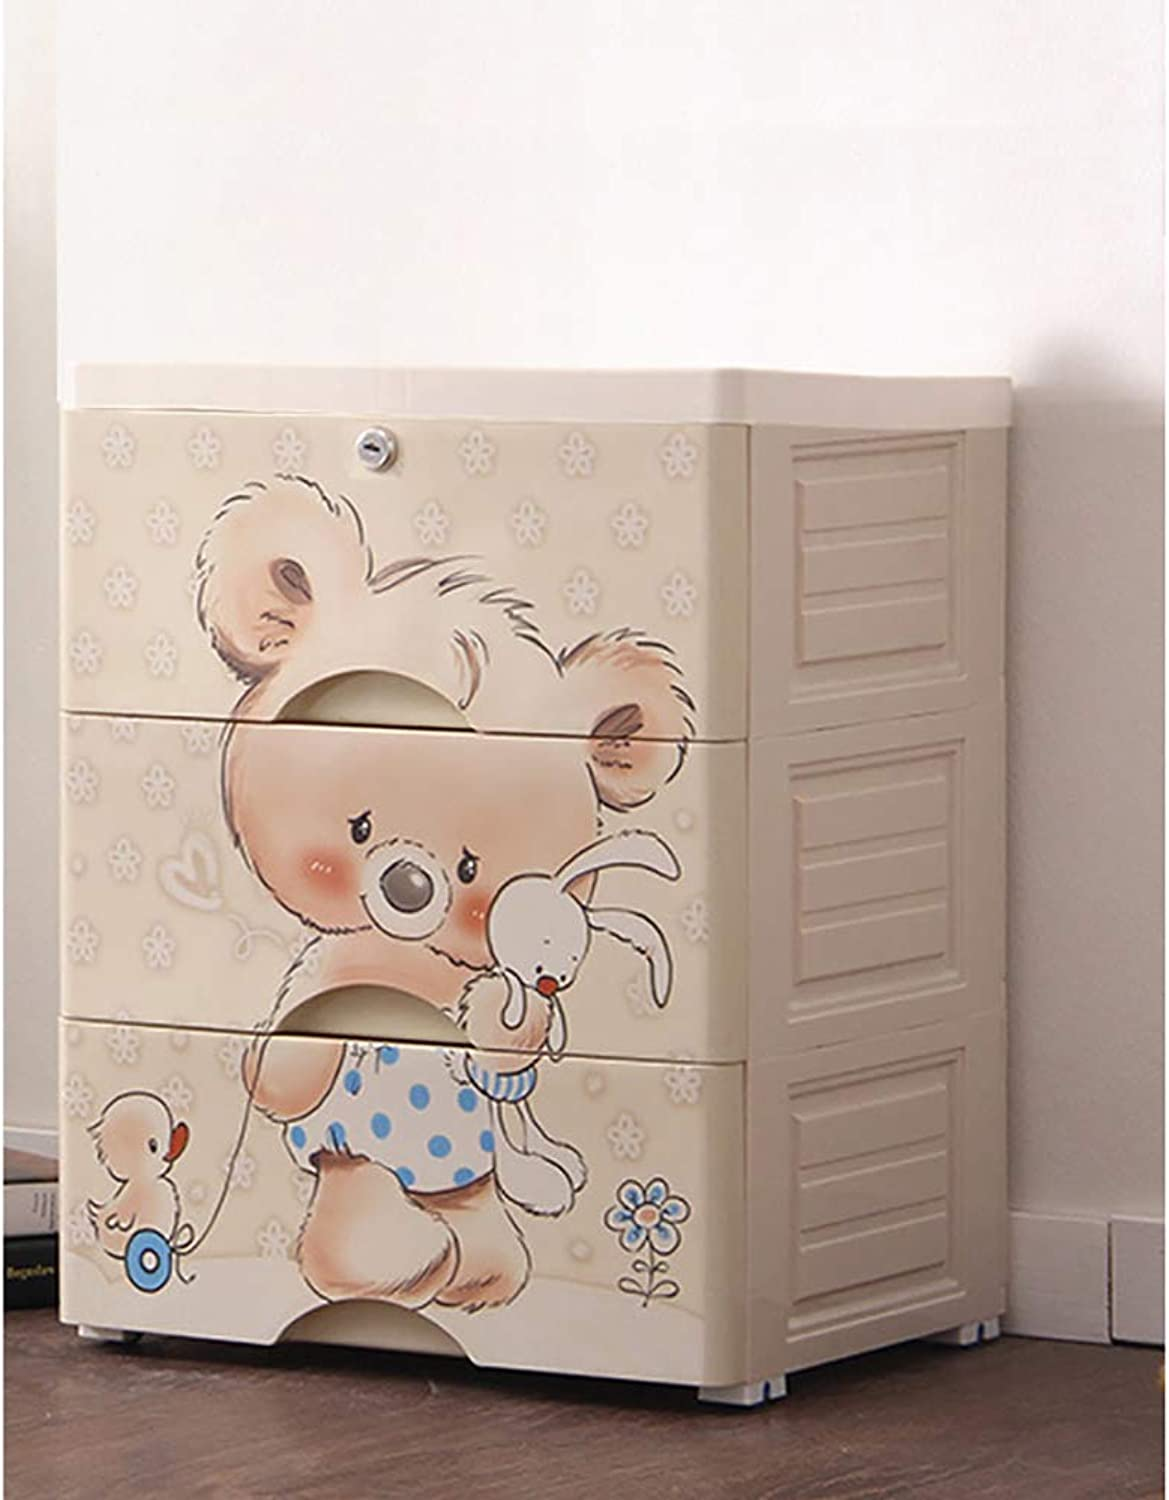 Plastic Cartoon Wardrobe Sealed Khaki Storage Box Storage Pouch Toy Accessories Large Capacity Clothes Key Such as Diapers with casters Storage case Convenience Goods 3 Stages